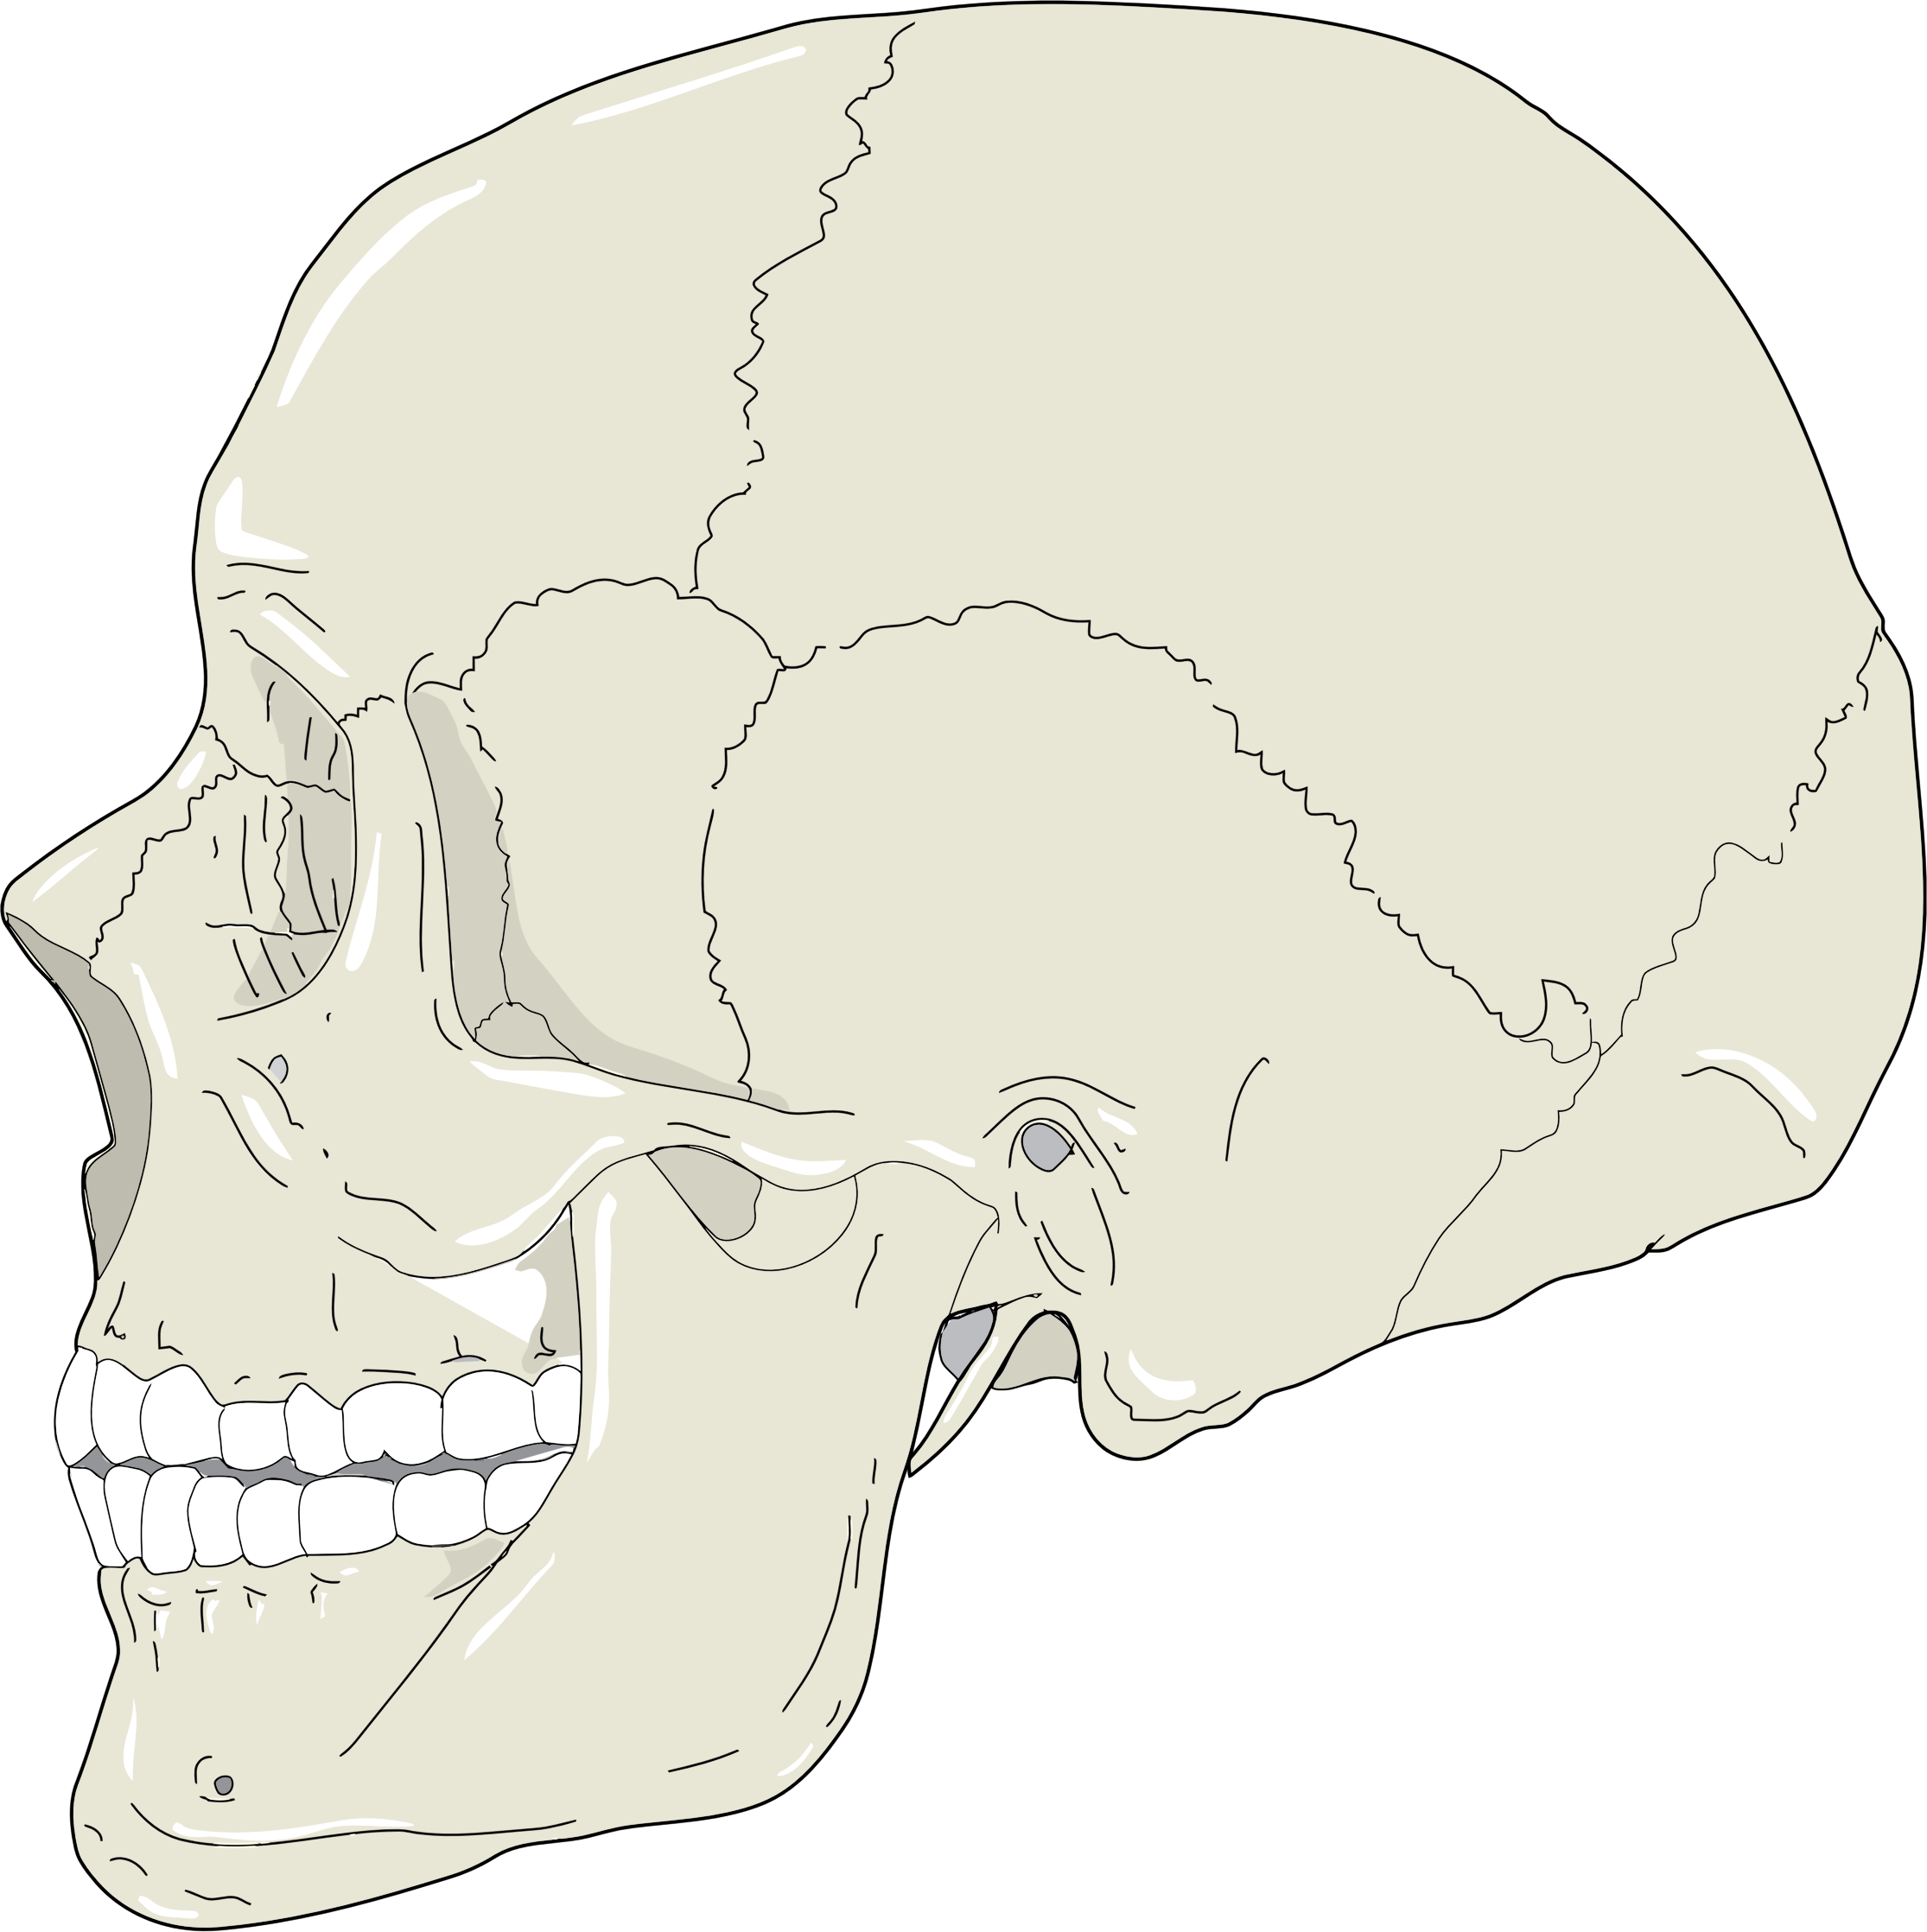 Realistic Human Skull Profile View by GDJ